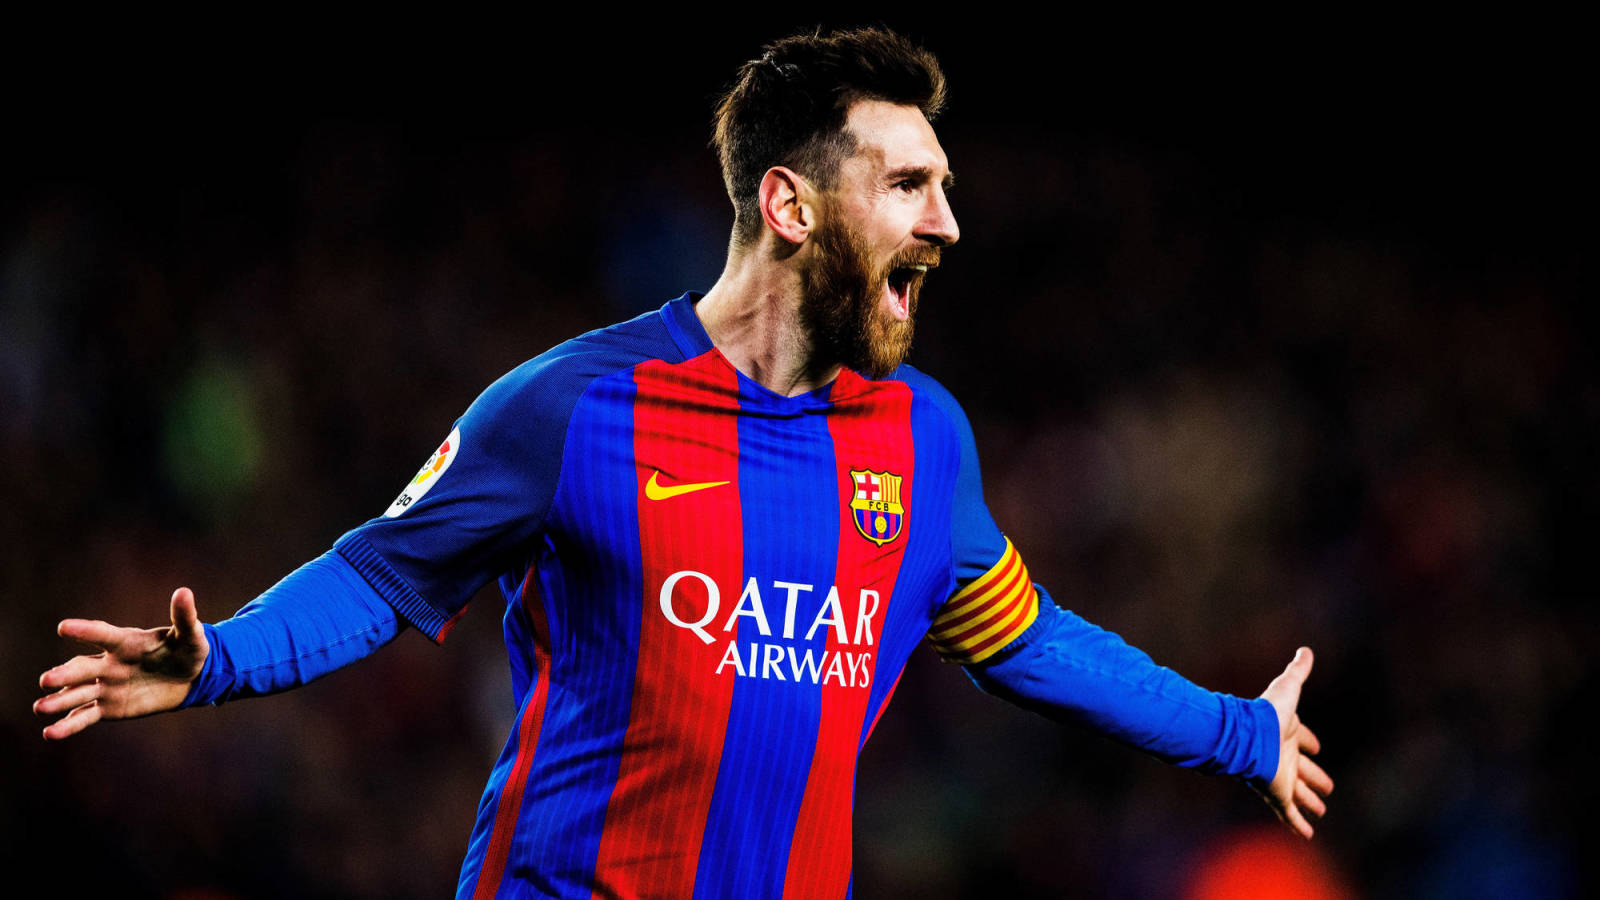 The 30 best soccer players of the 2010s